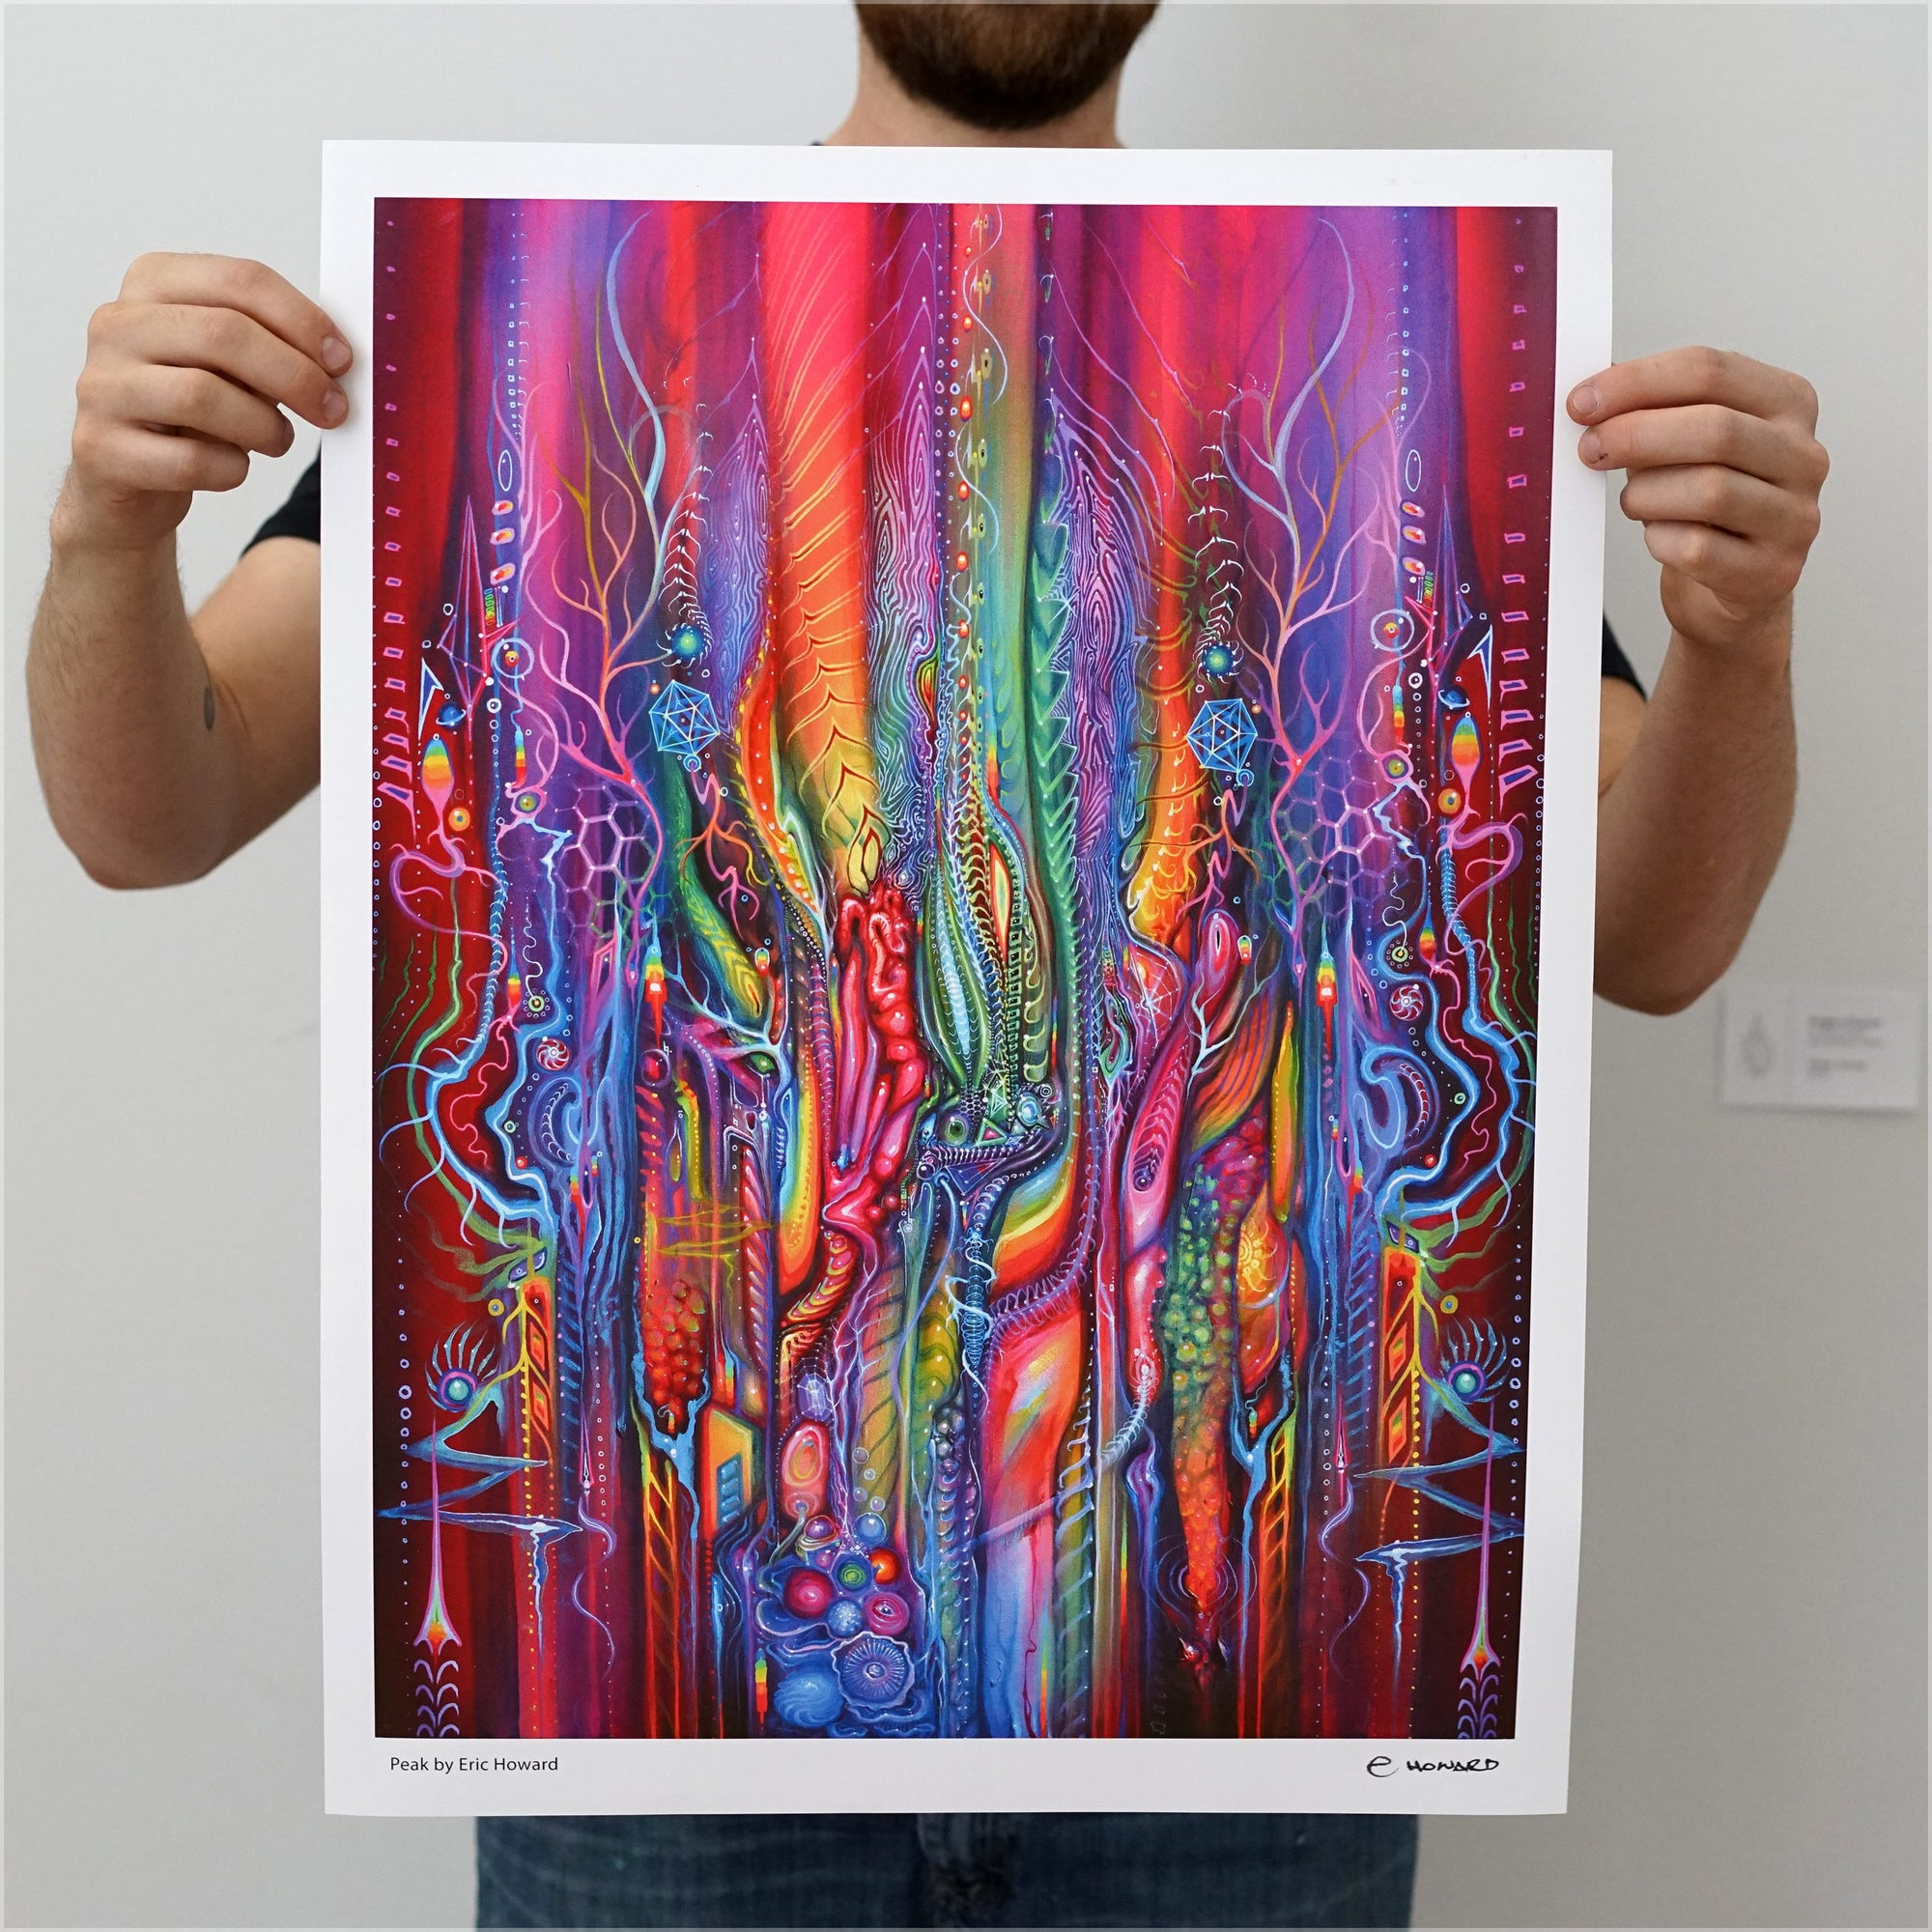 Peak Signed Print by Eric Howard - 24 Hour Release